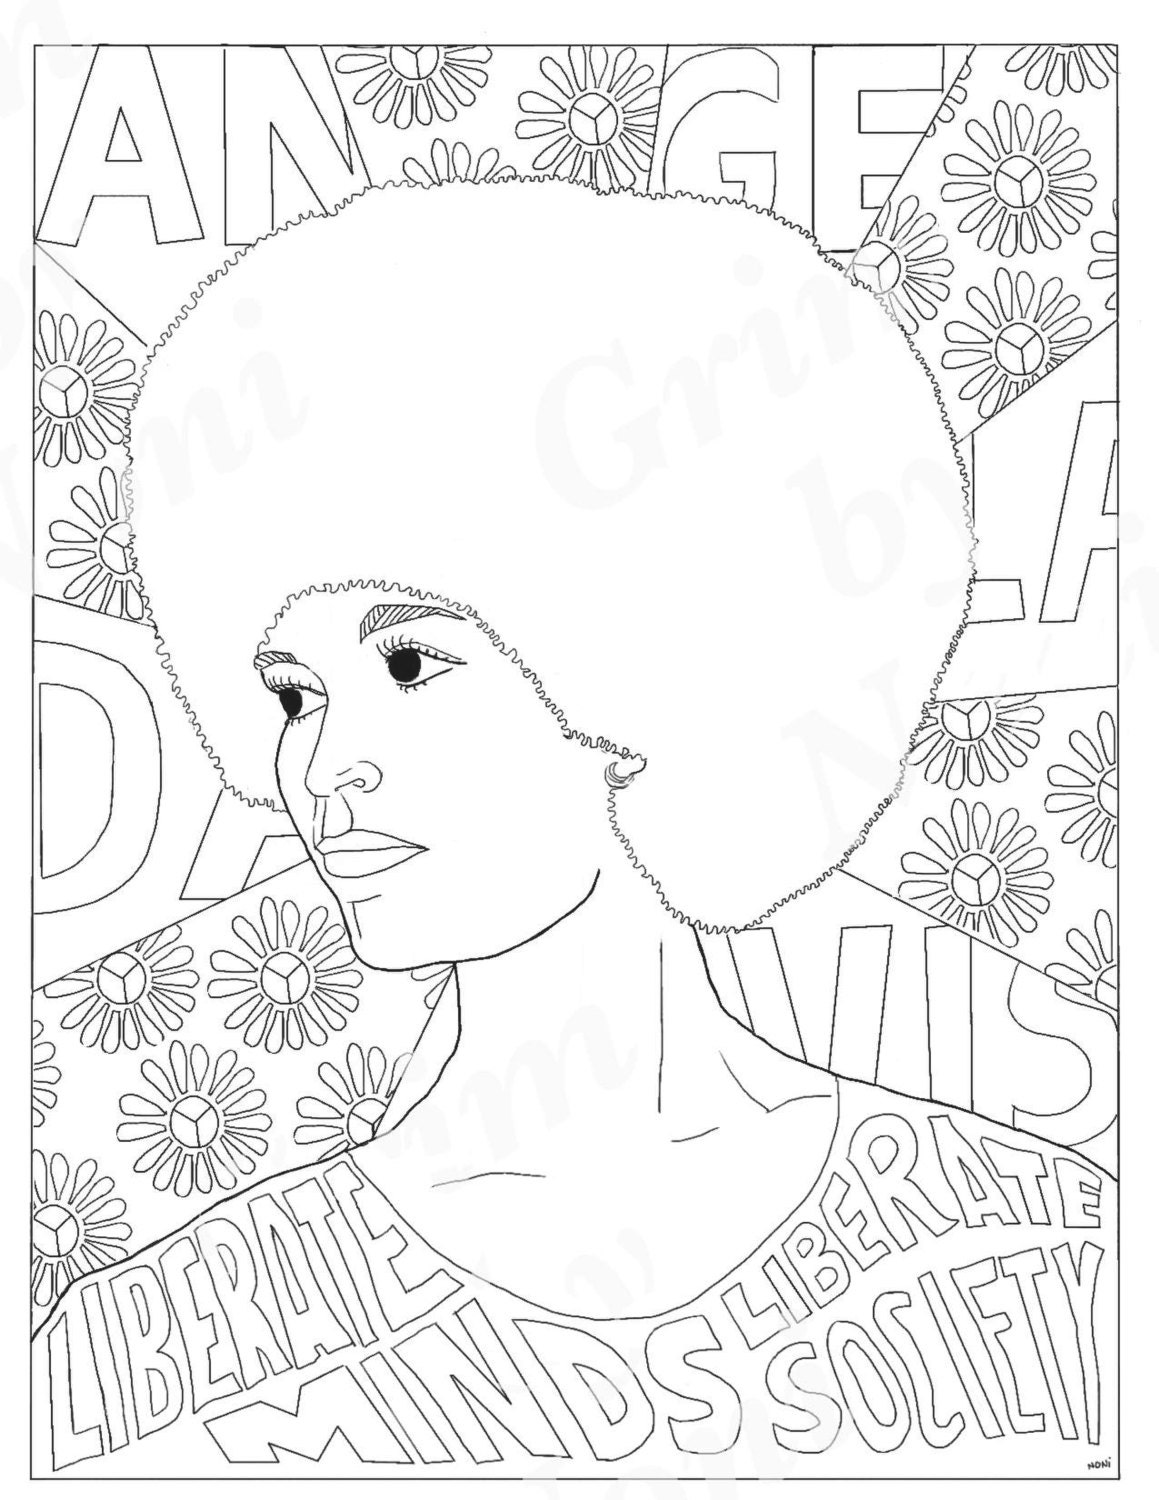 angela davis portraits coloring pages for adults colouring